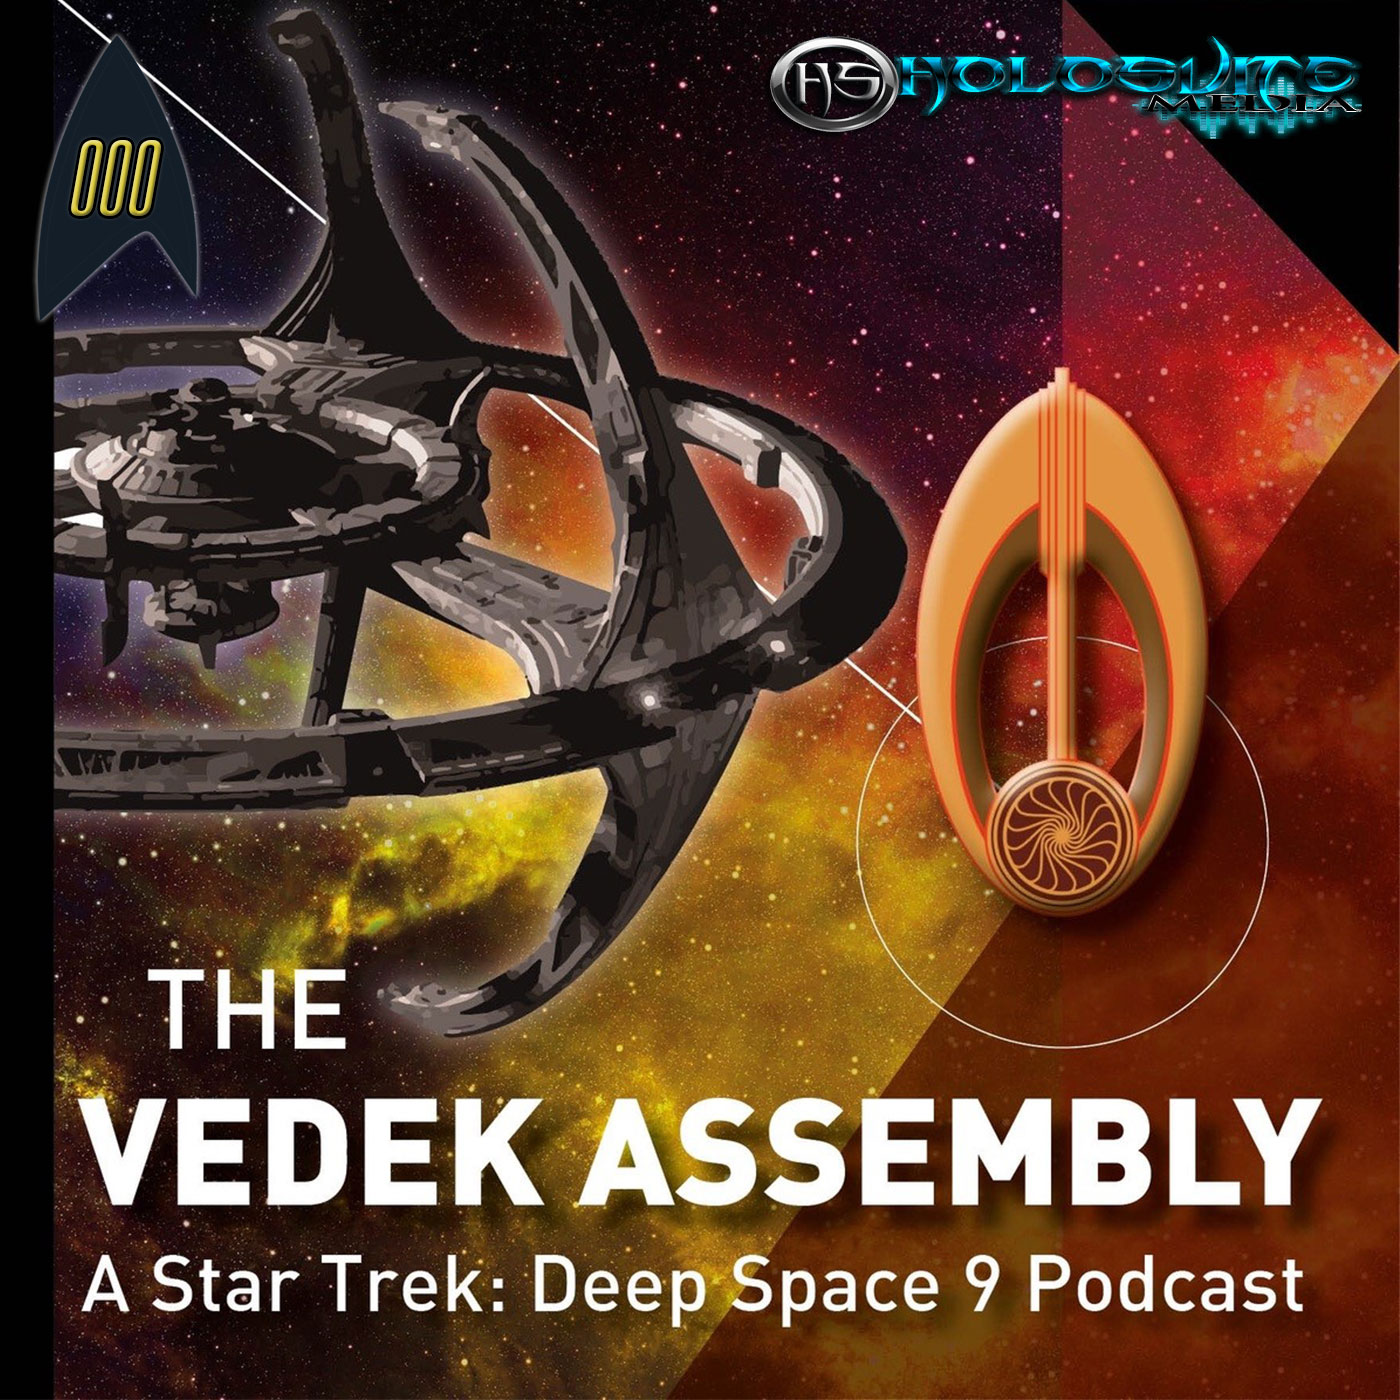 The Vedek Assembly Podcast Episode 0